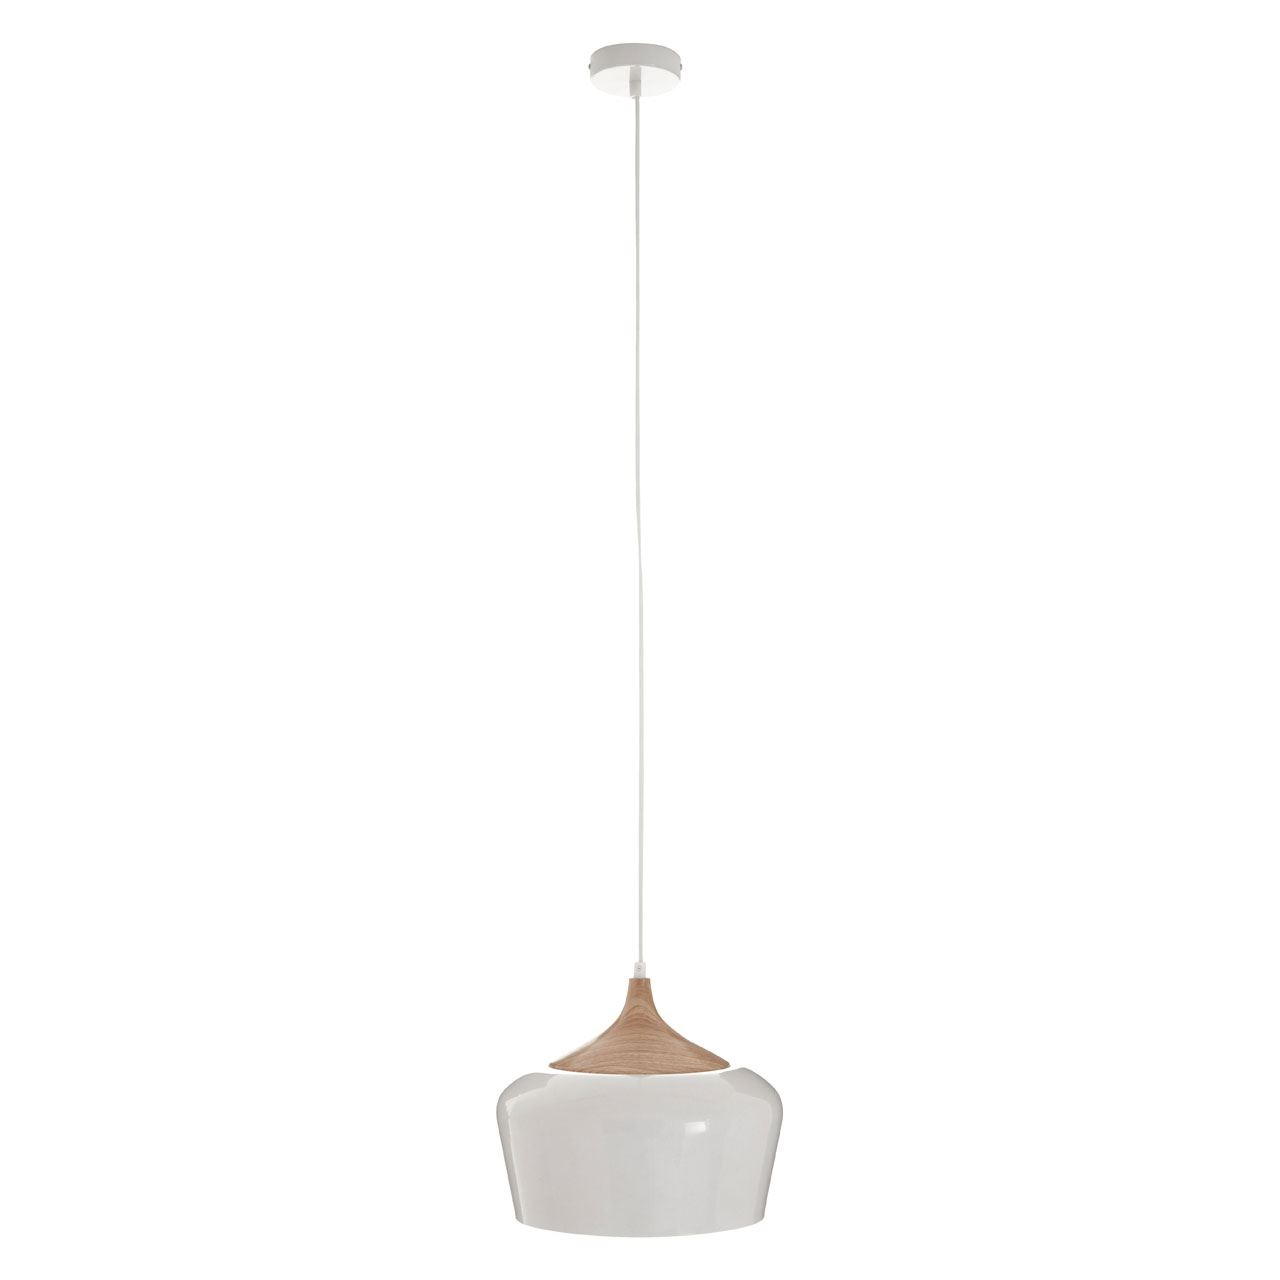 Pendant Lights Contemporary Beautiful design